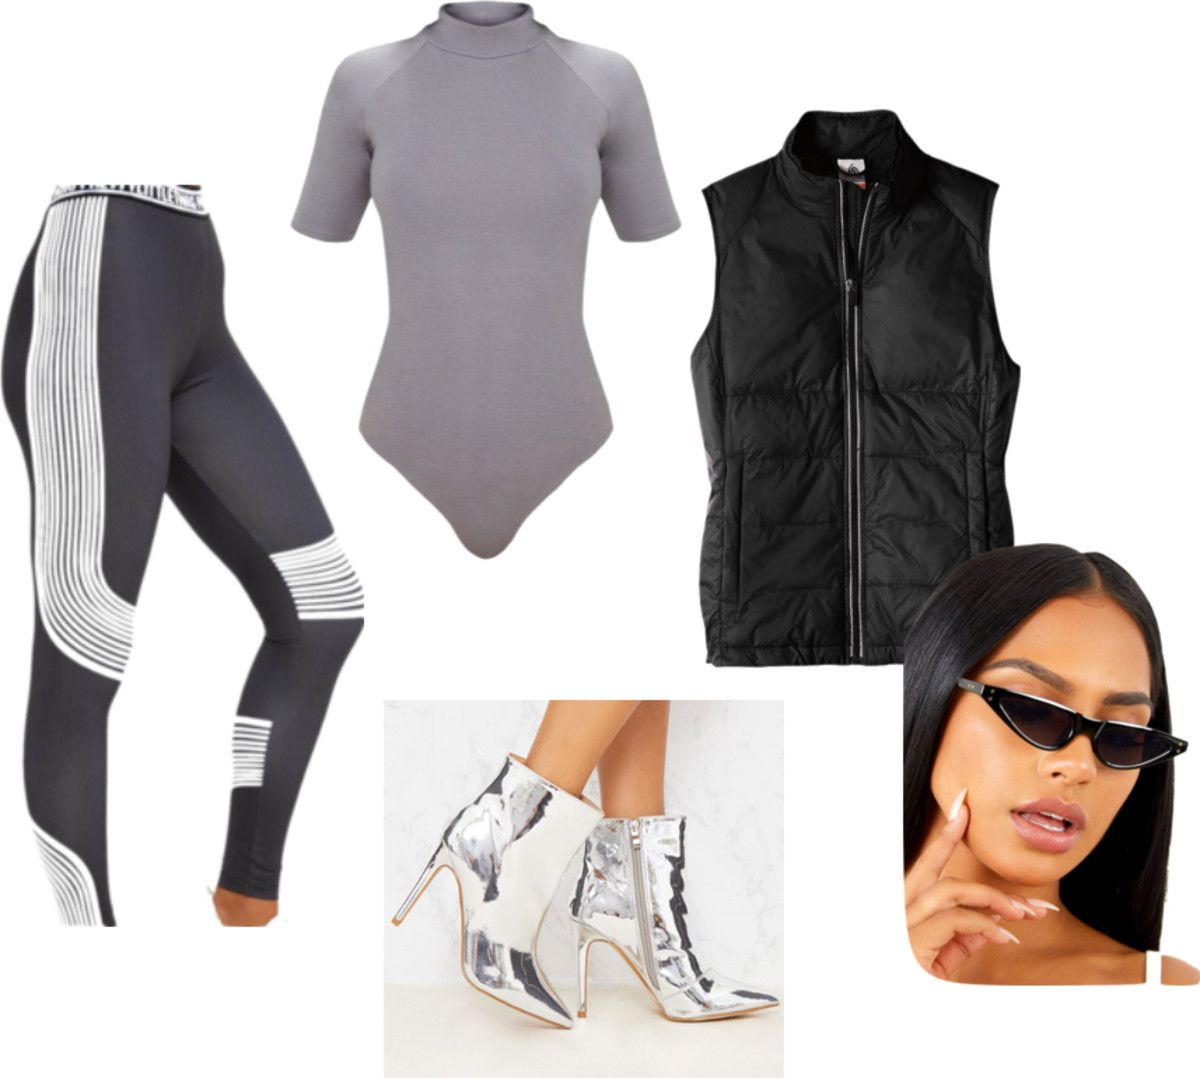 Outfit inspired by Kim Kardashian's